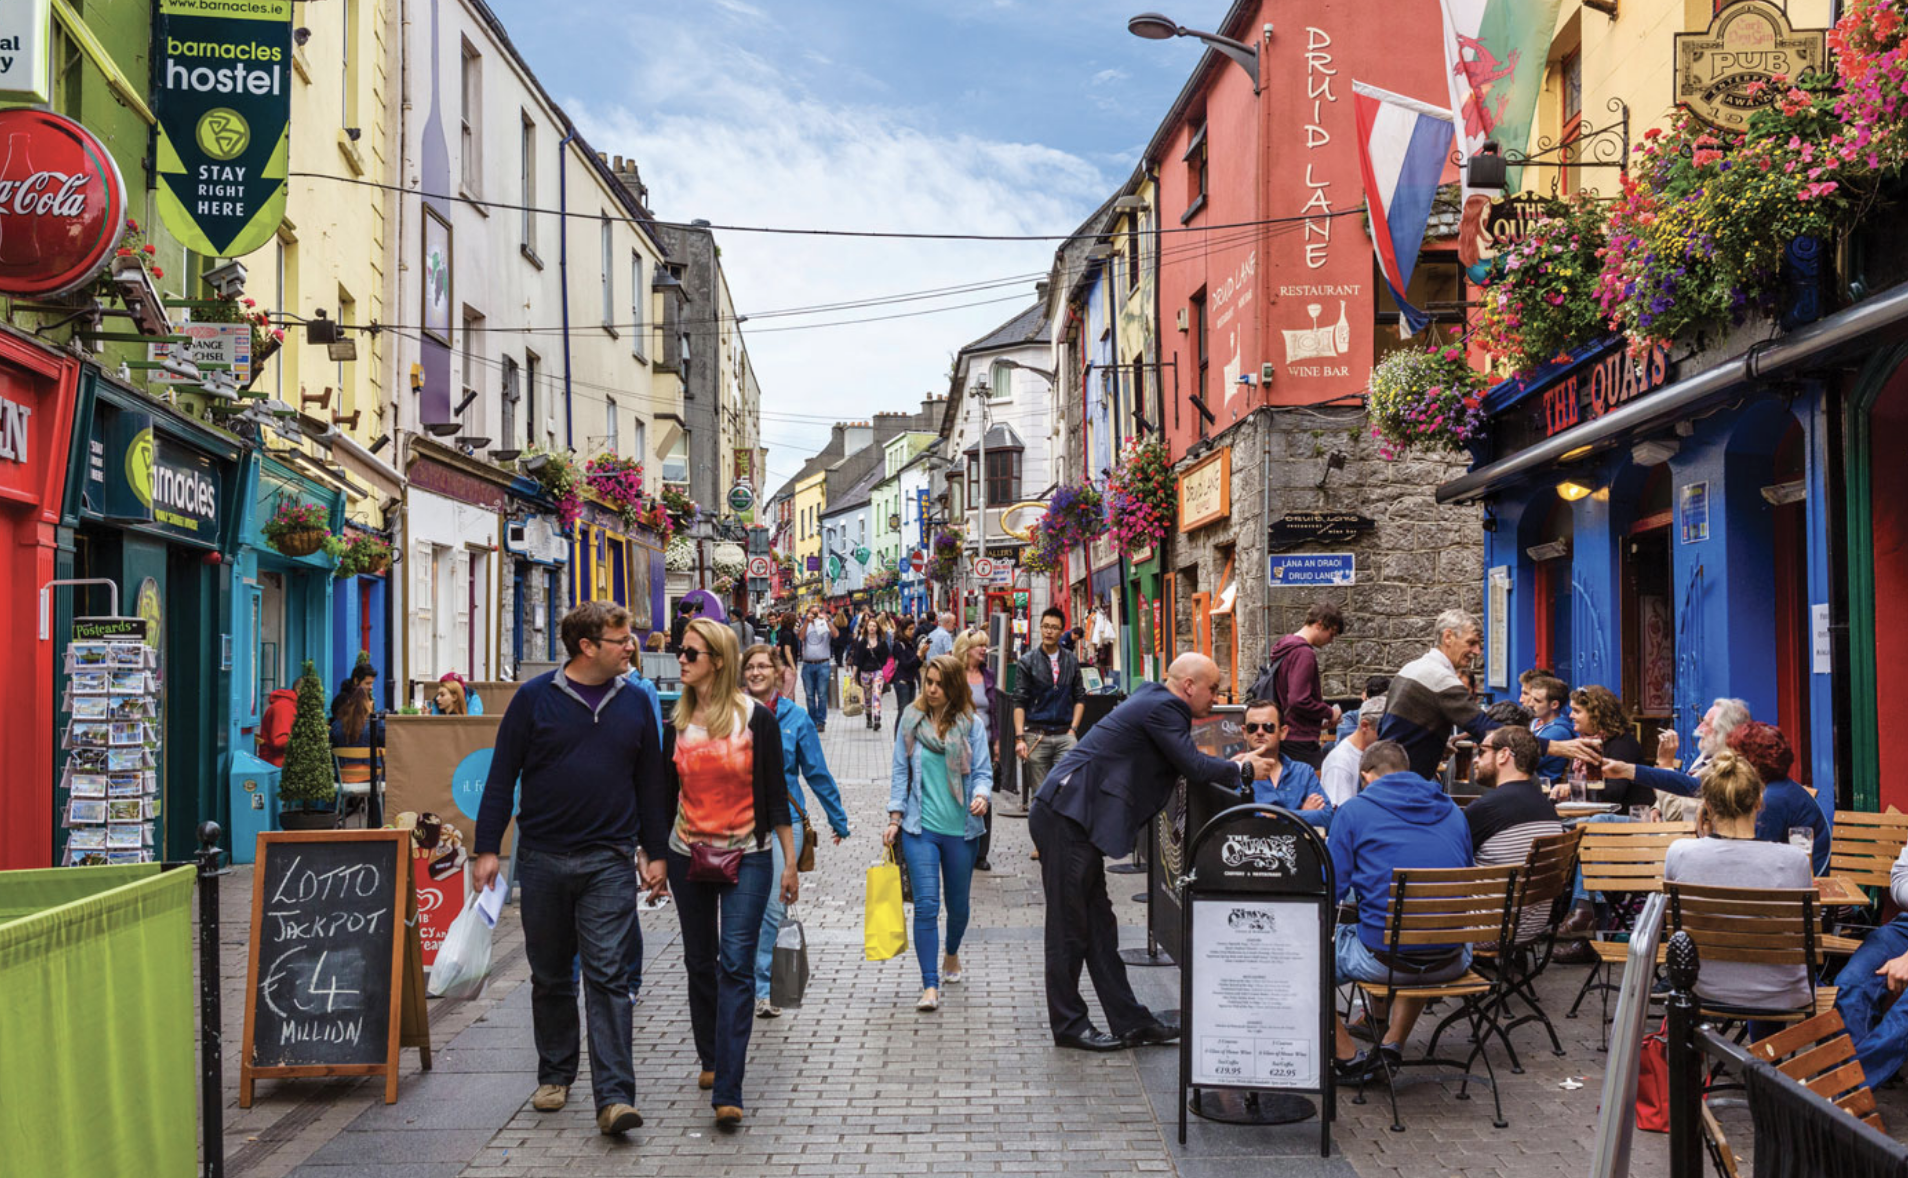 September 14:Explore more of Galway - Use this last day in Galway to walk the streets, drive the Connemara one last time or go on a castle hunt along the Wild Atlantic Way!